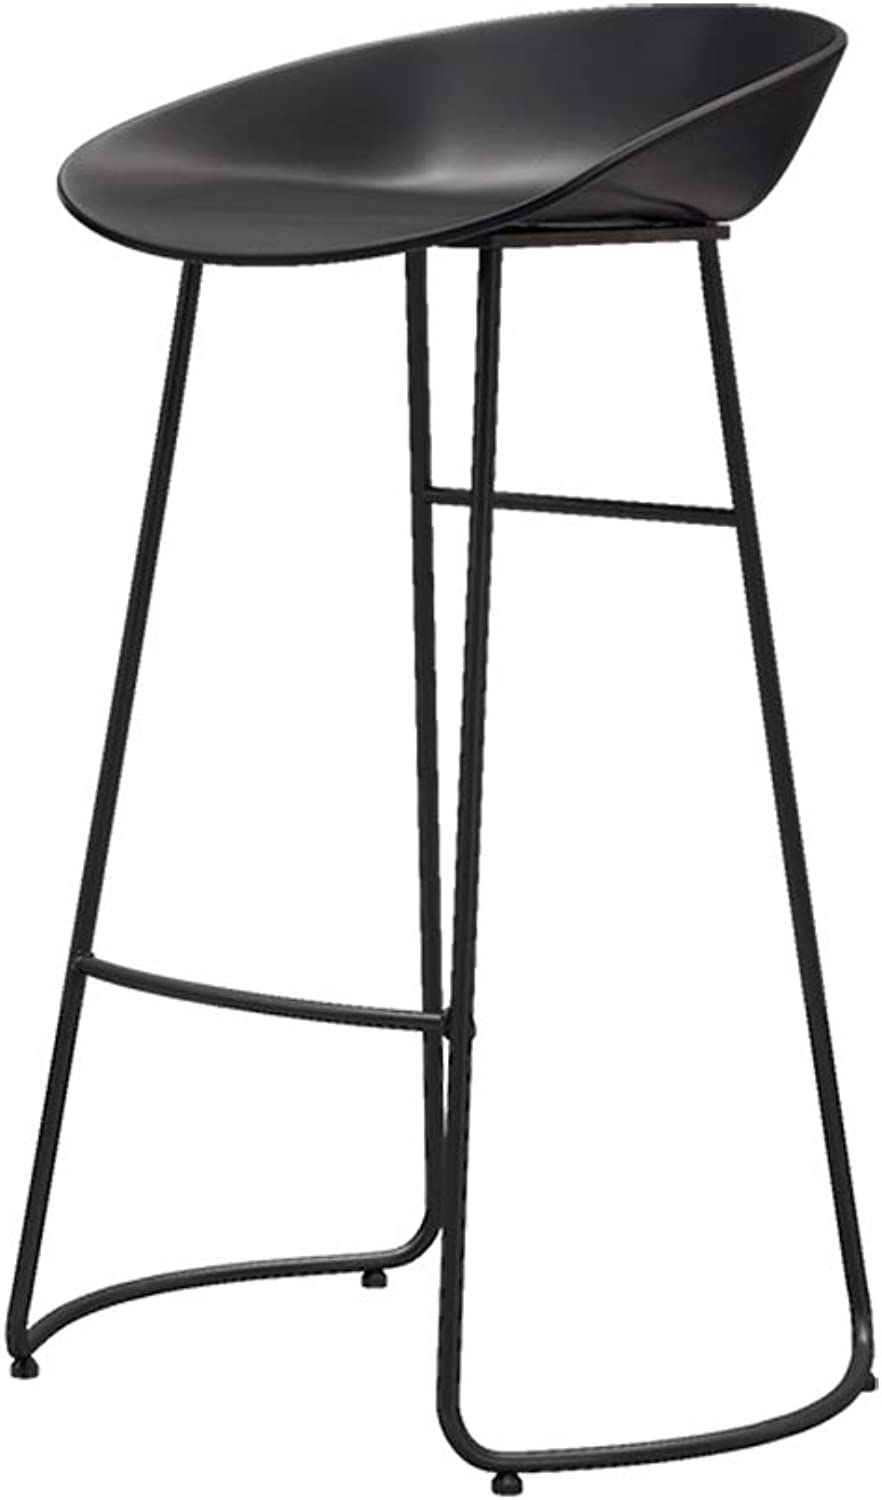 Bar Stools Bar Chairs Breakfast Dining Stools for Kitchen Island Counter Bar Stools Loading 200KG PP Material Sitting Surface Black Metal Legs